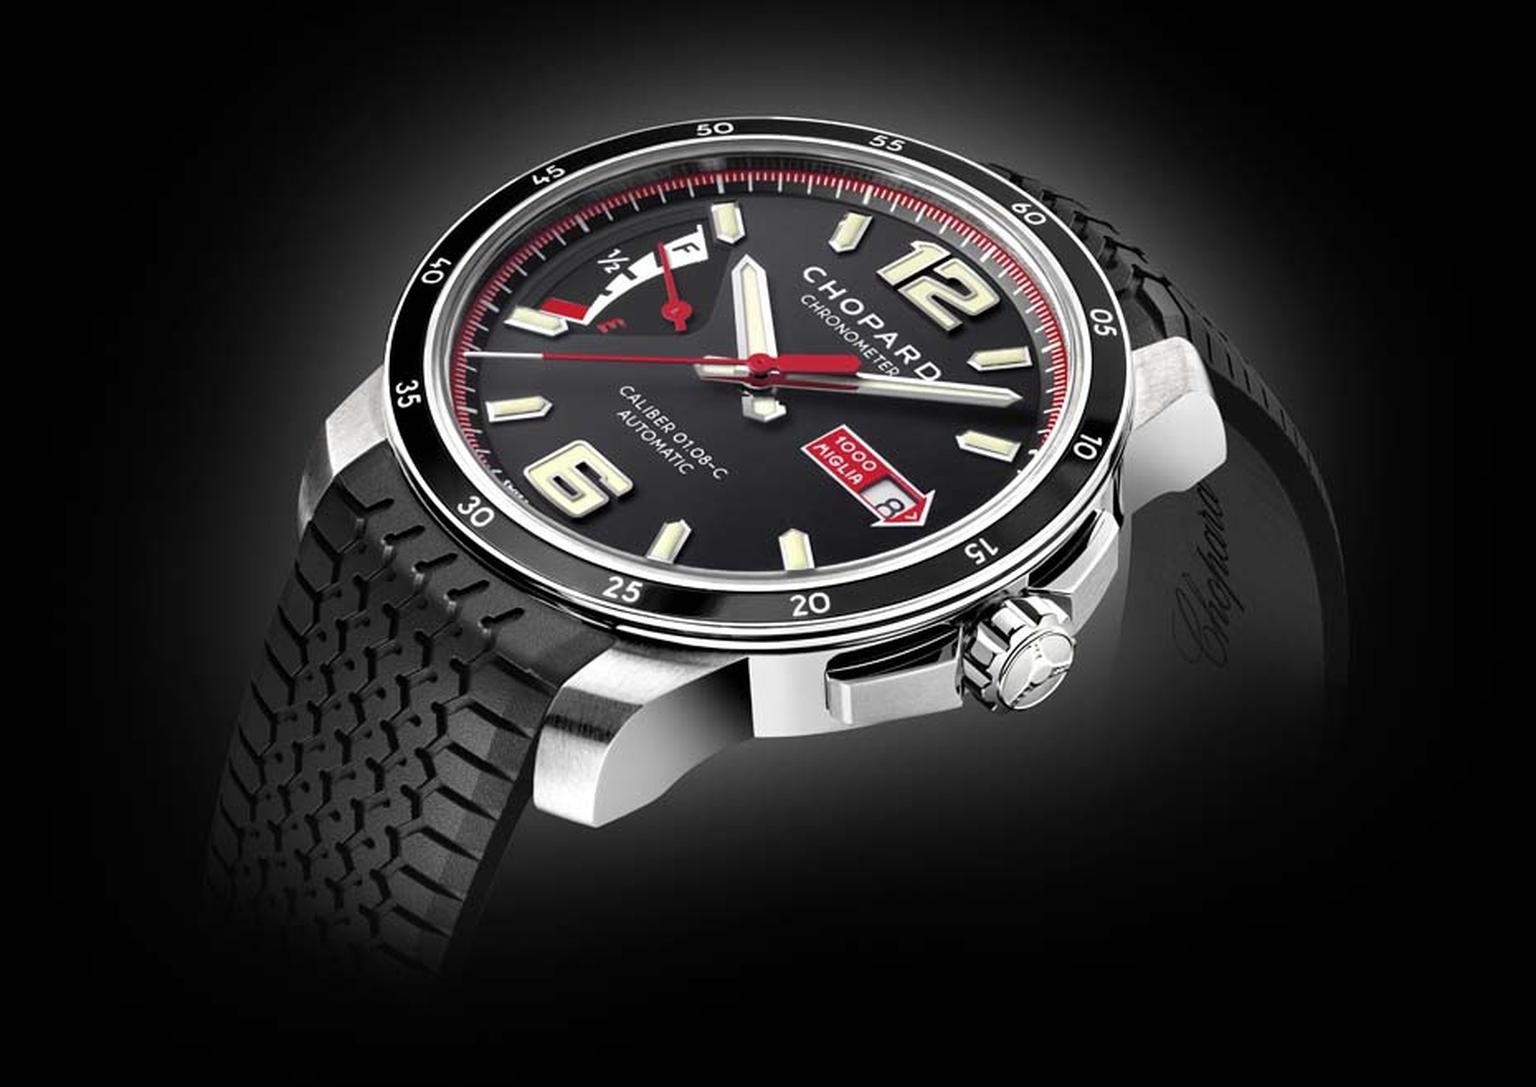 Chopard_Mille Miglia watches_007.jpg